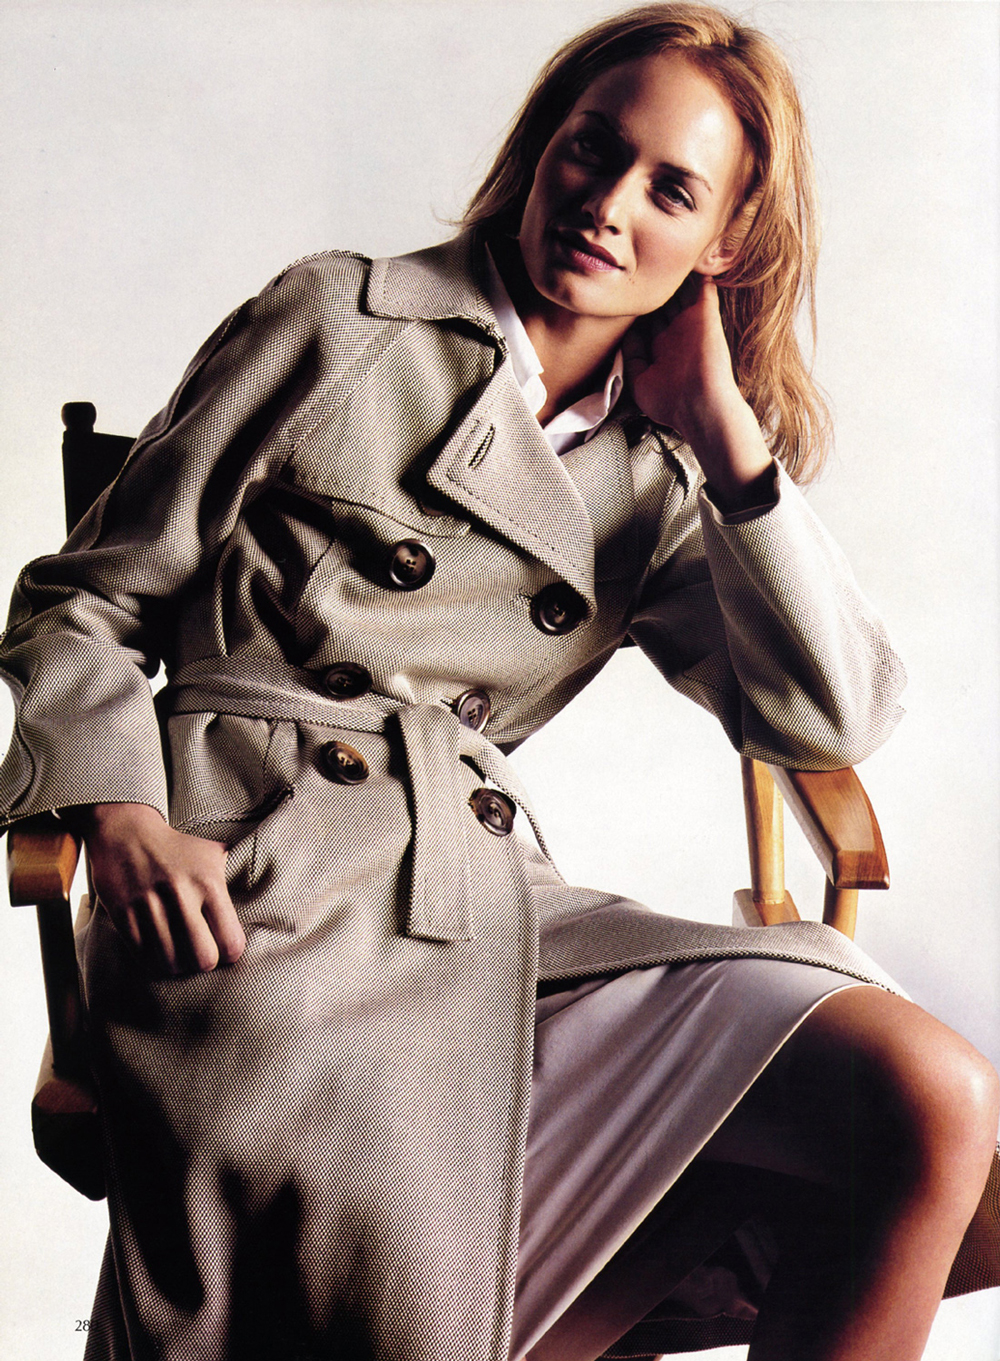 Vogue US February 2000 via www.fashionedbylove.co.uk